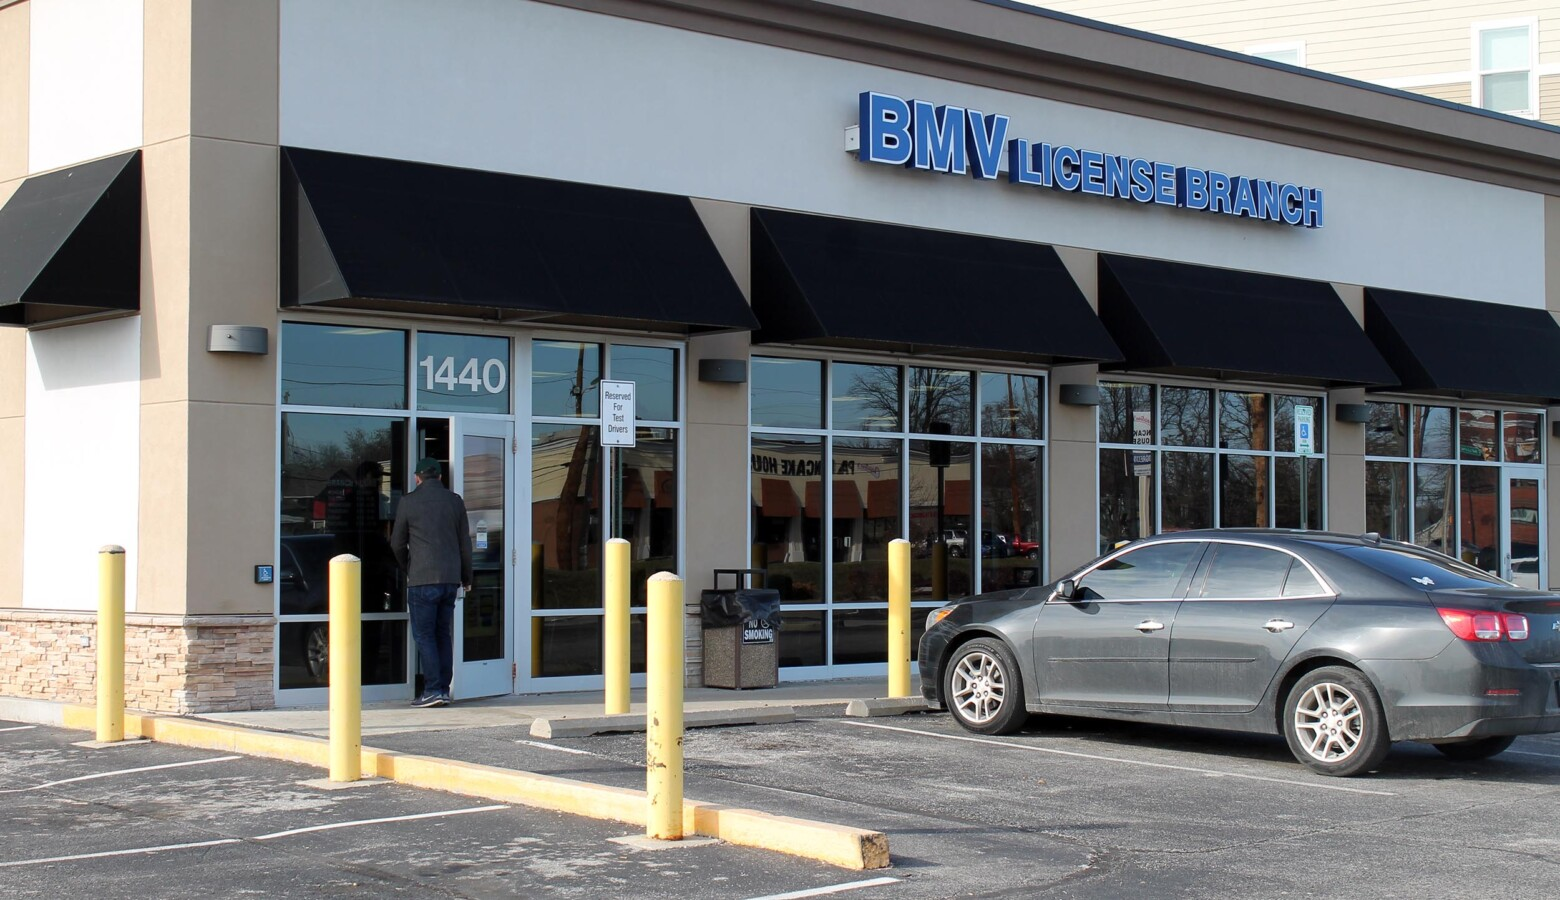 The BMV is asking customers not to pay in cash during a nationwide coin shortage. (Lauren Chapman/IPB News)